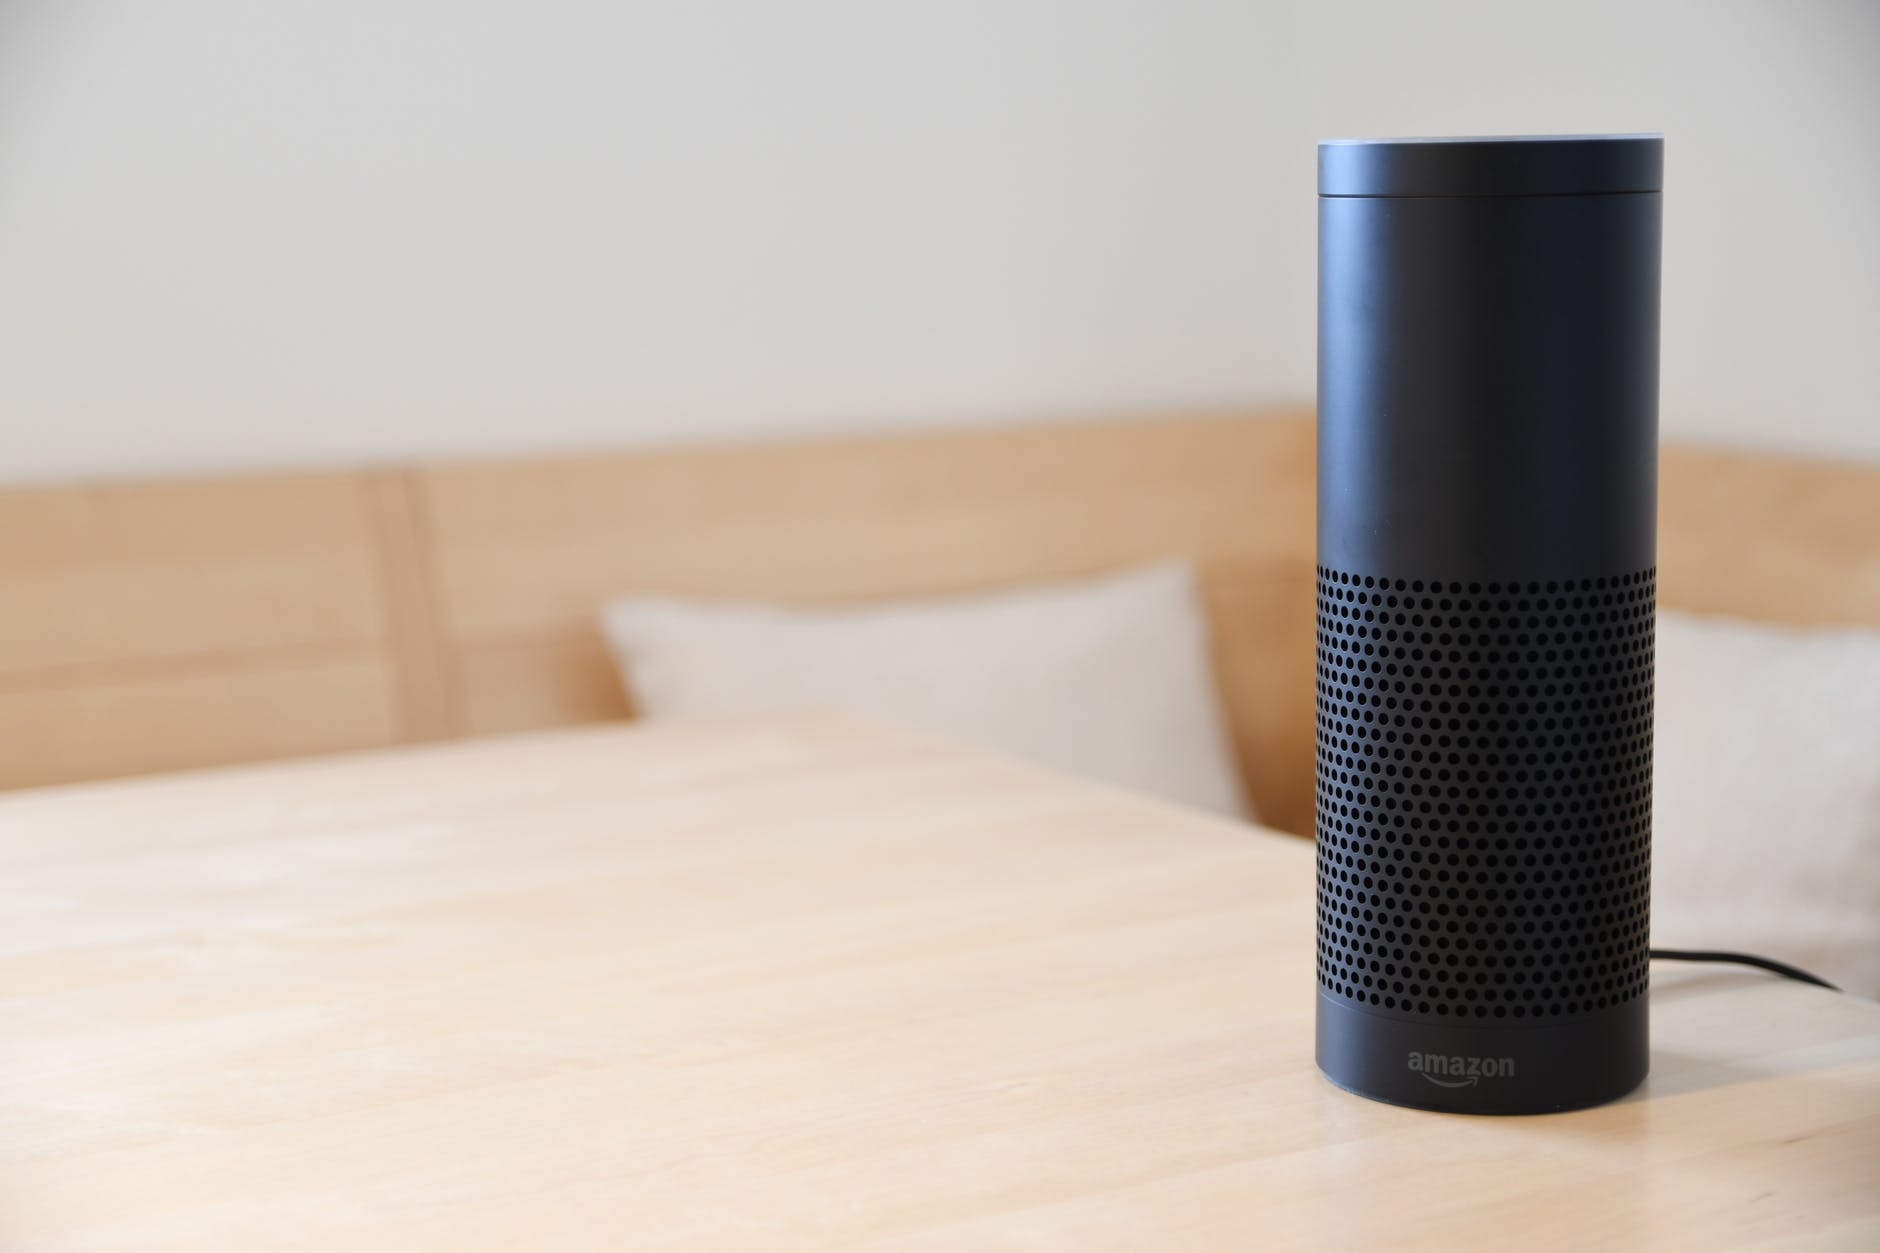 amazon voice device on table